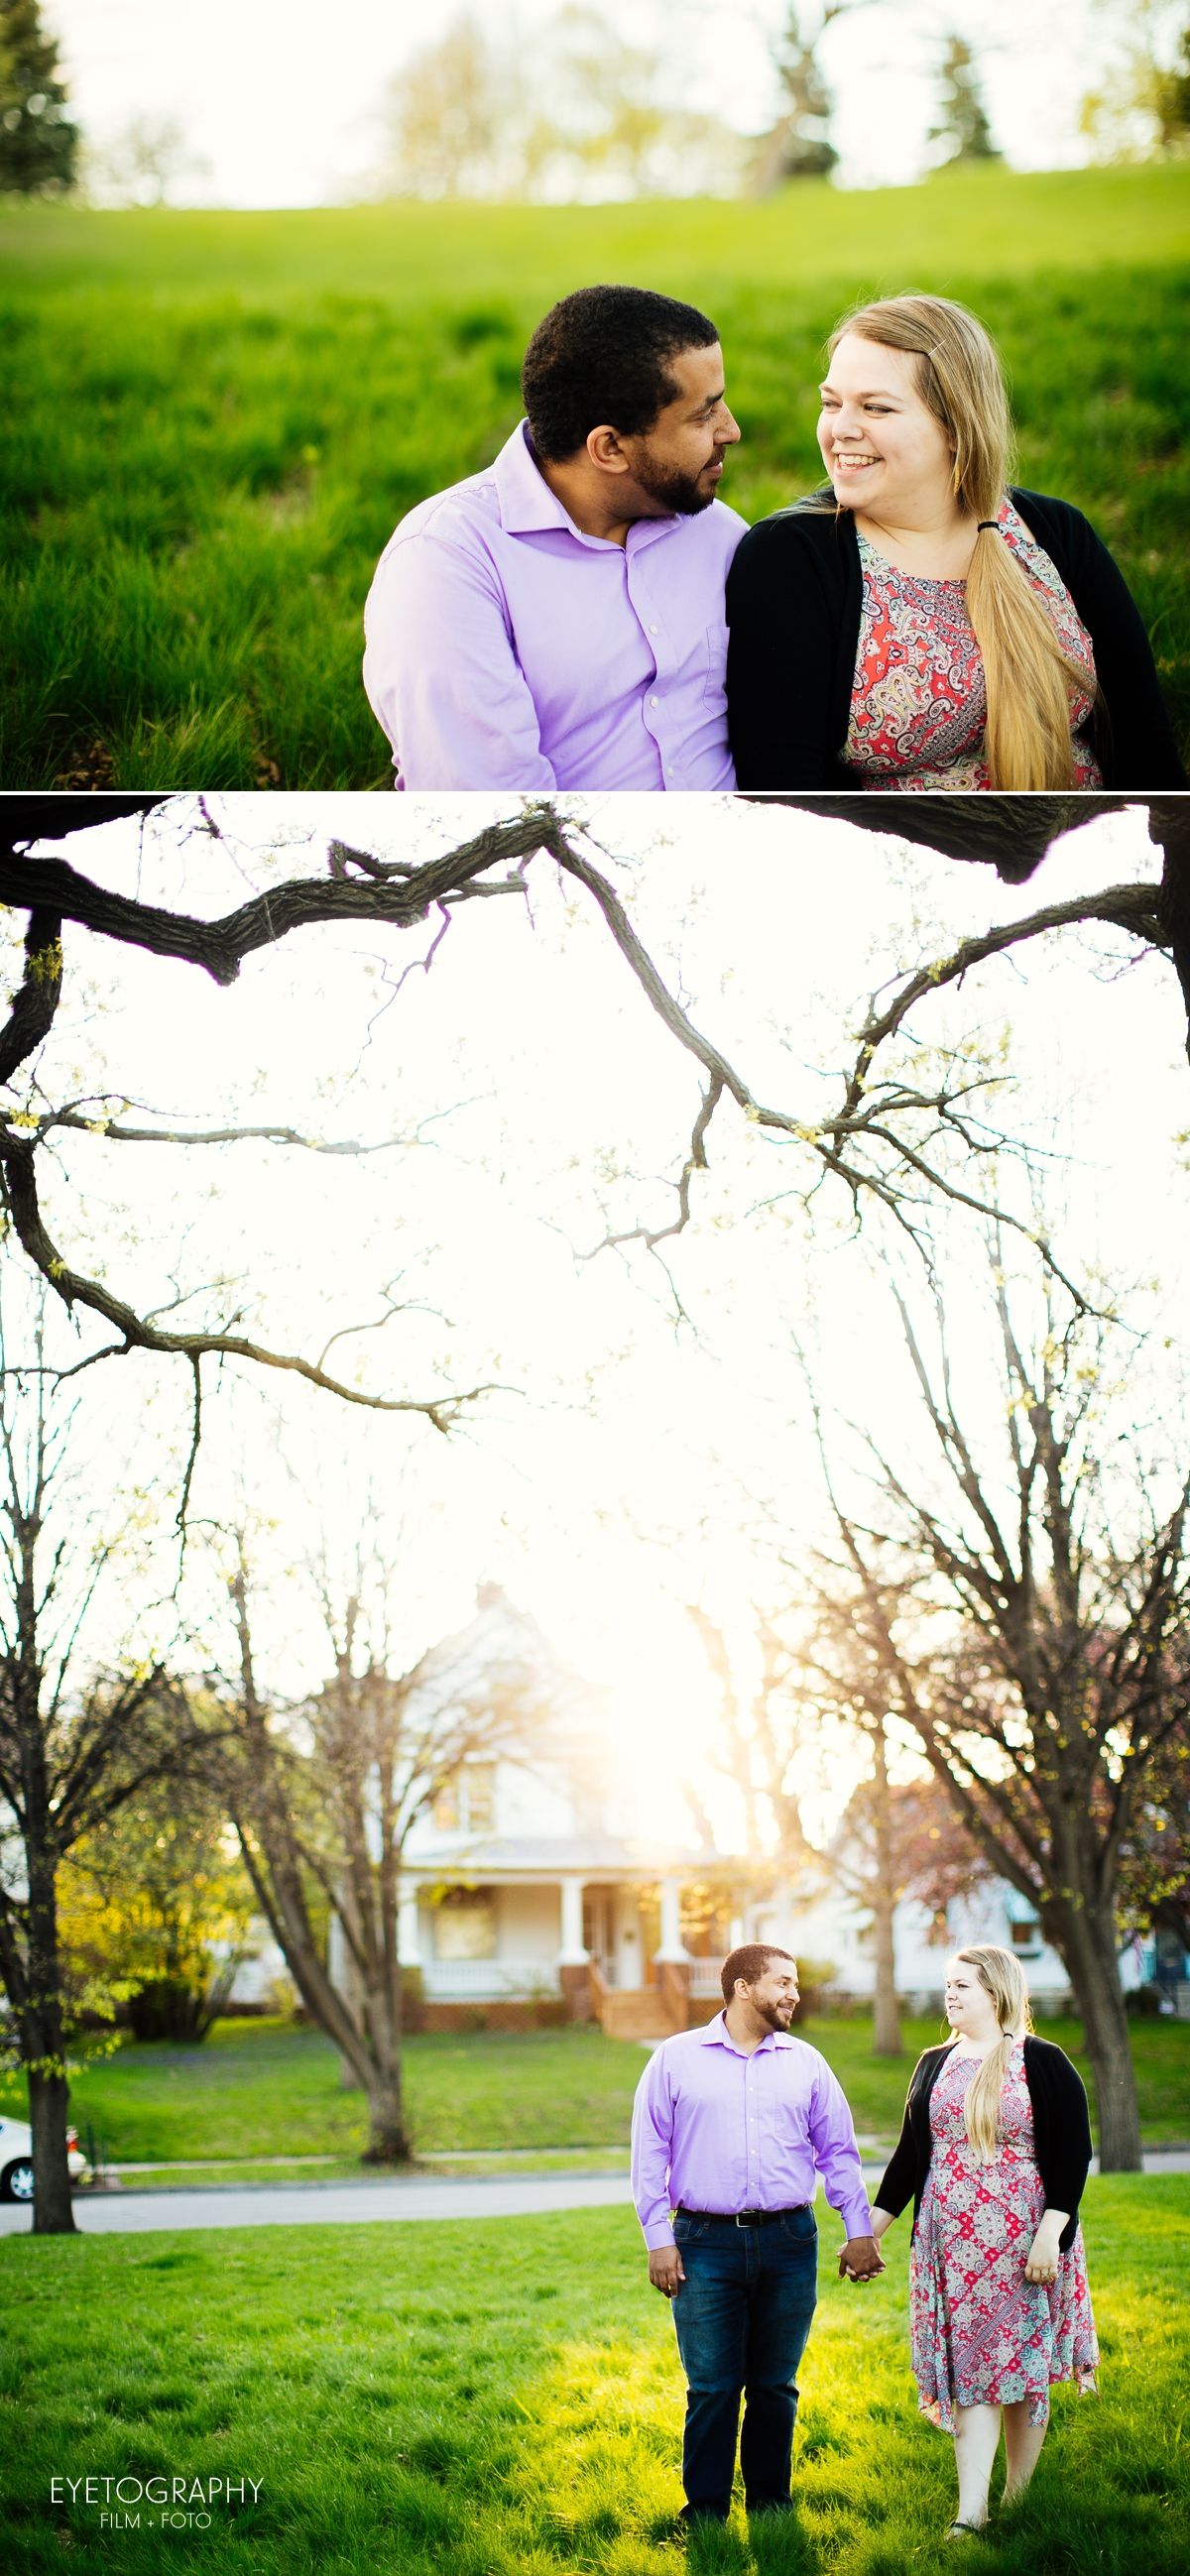 St. Paul Engagement Photography | Eyetography Film + Foto | Emily + Nate 5